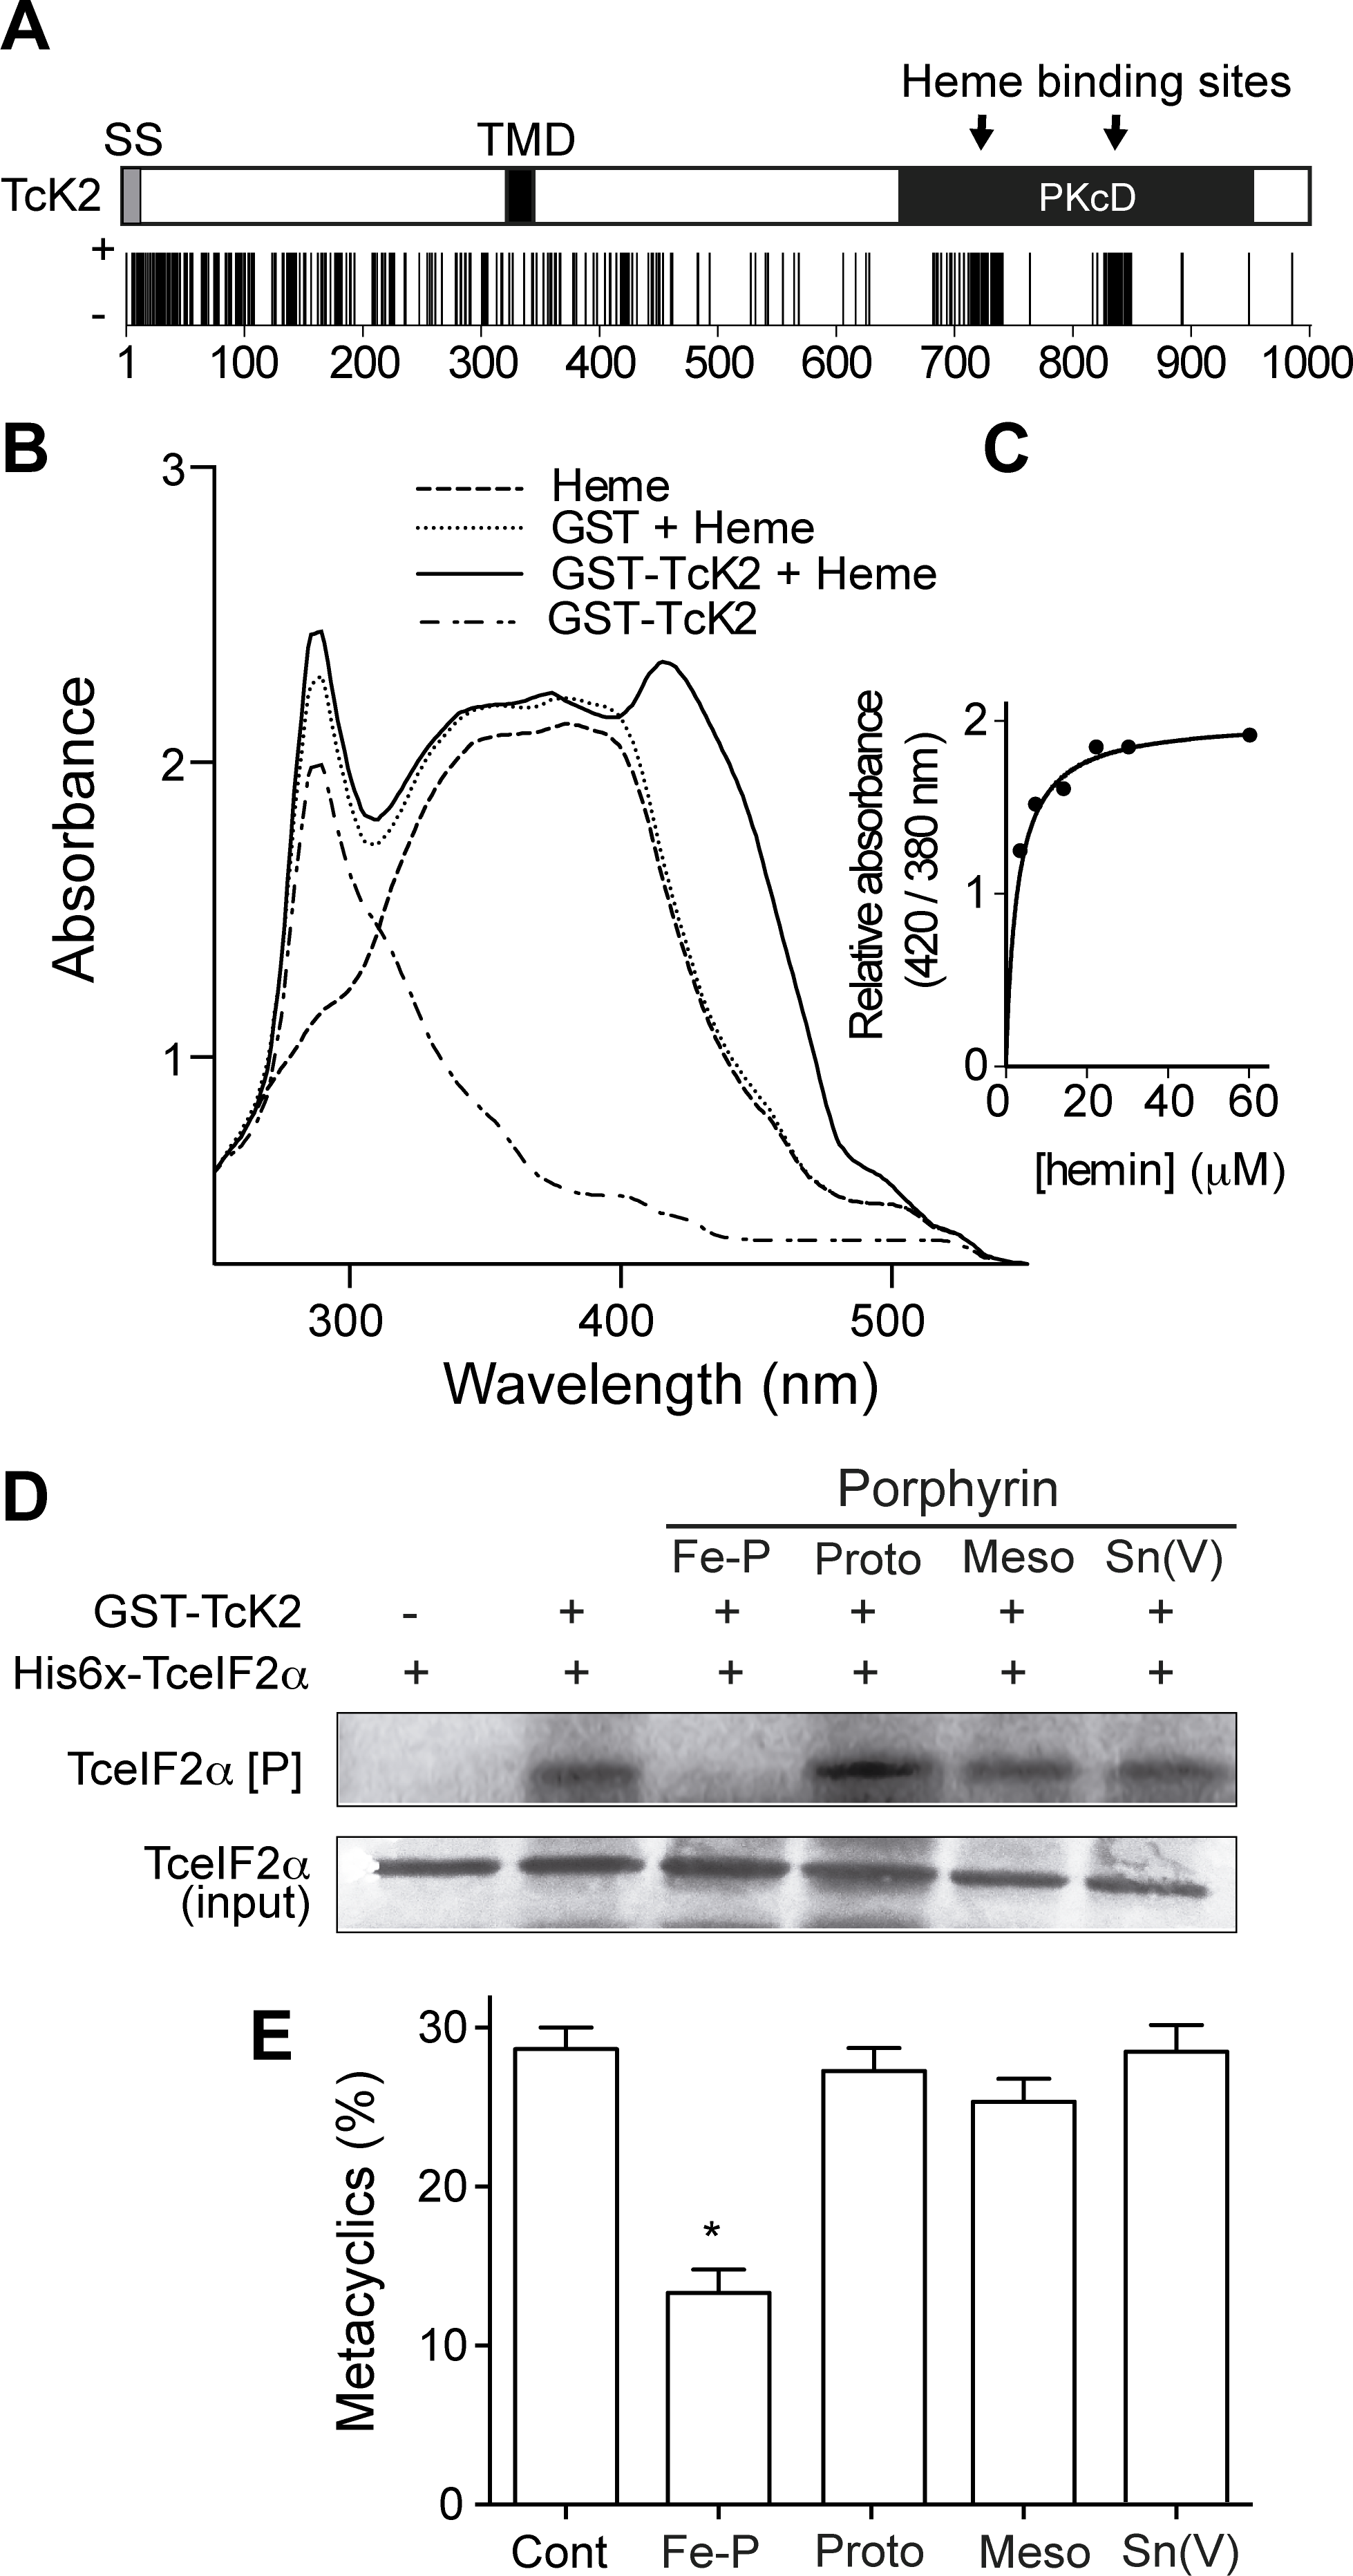 Heme binds specifically to the catalytic domain of TcK2 and inhibits TceIF2α phosphorylation and metacyclogenesis.